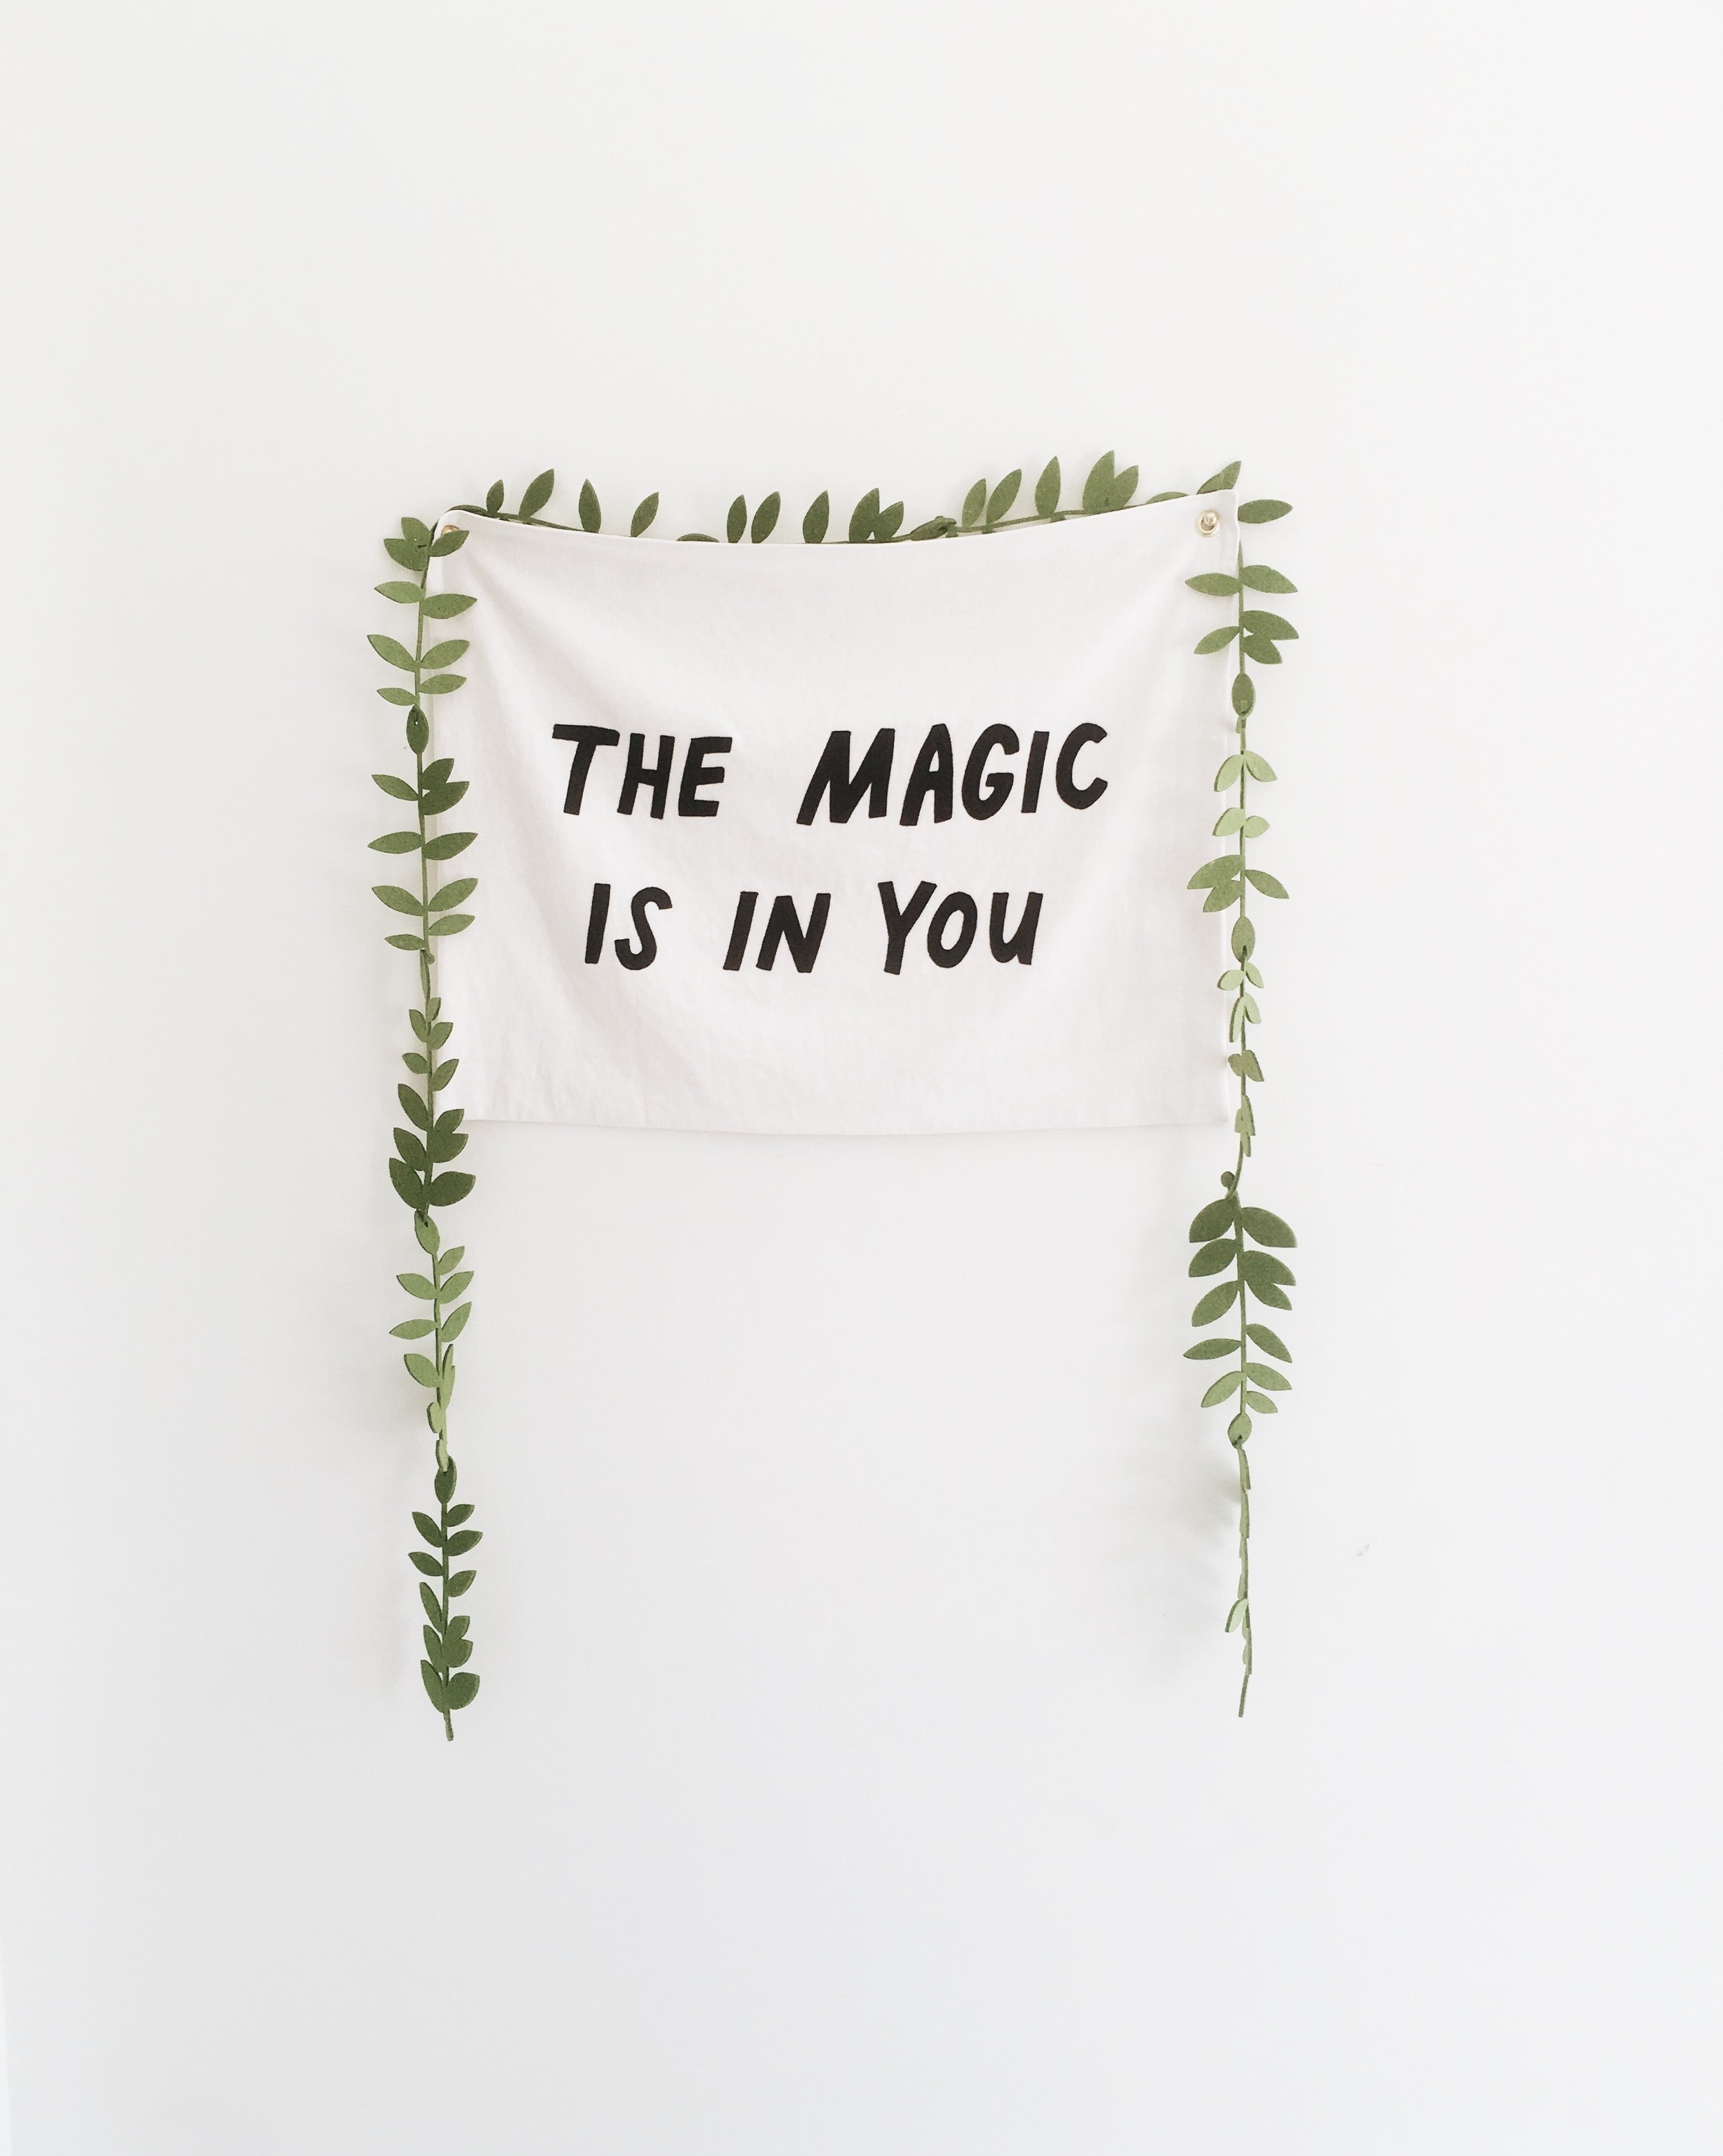 the magic is in you.